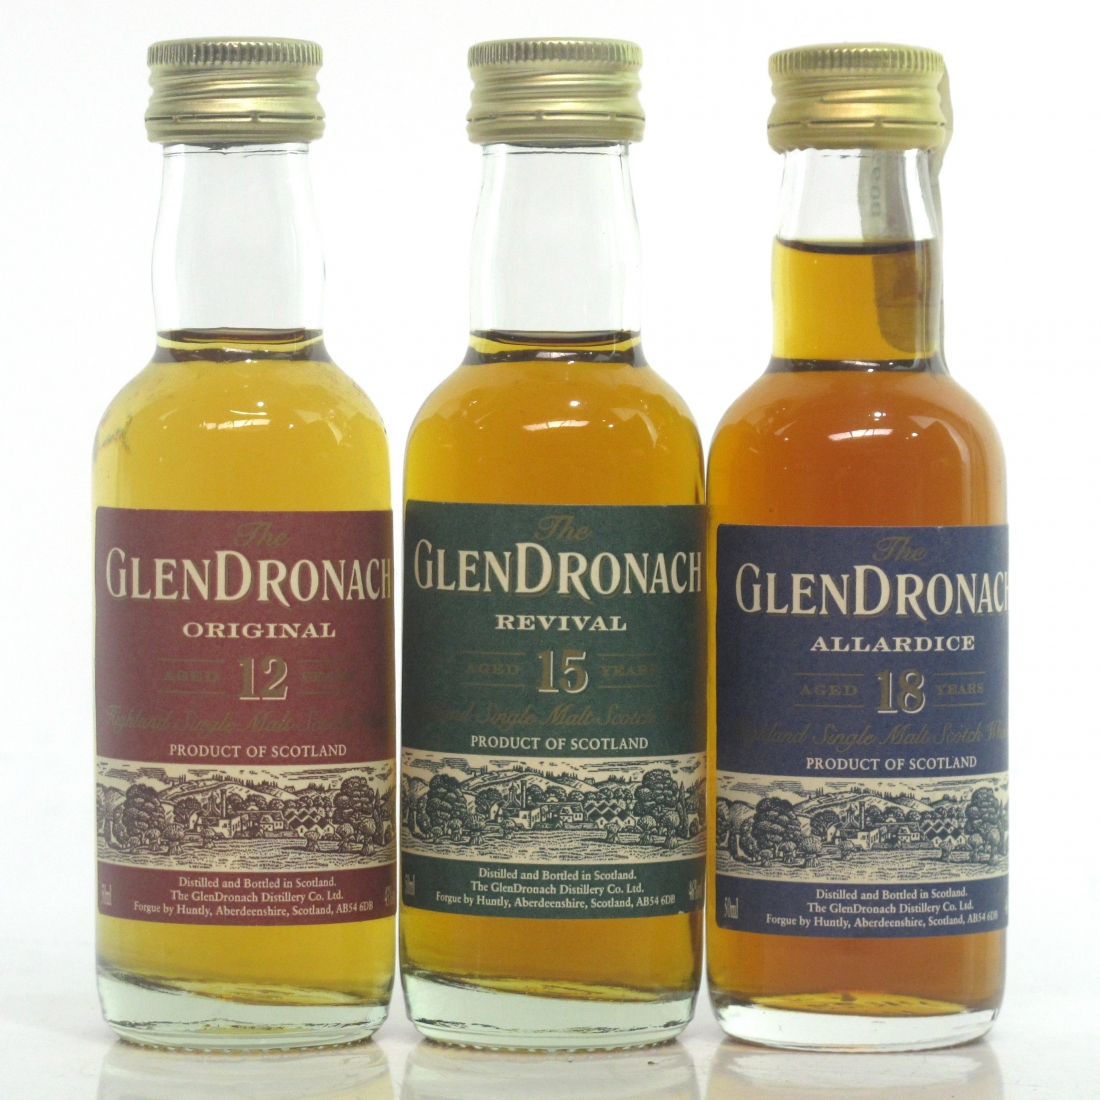 Glendronach Miniature Selection 3 x 5cl / includes Revival